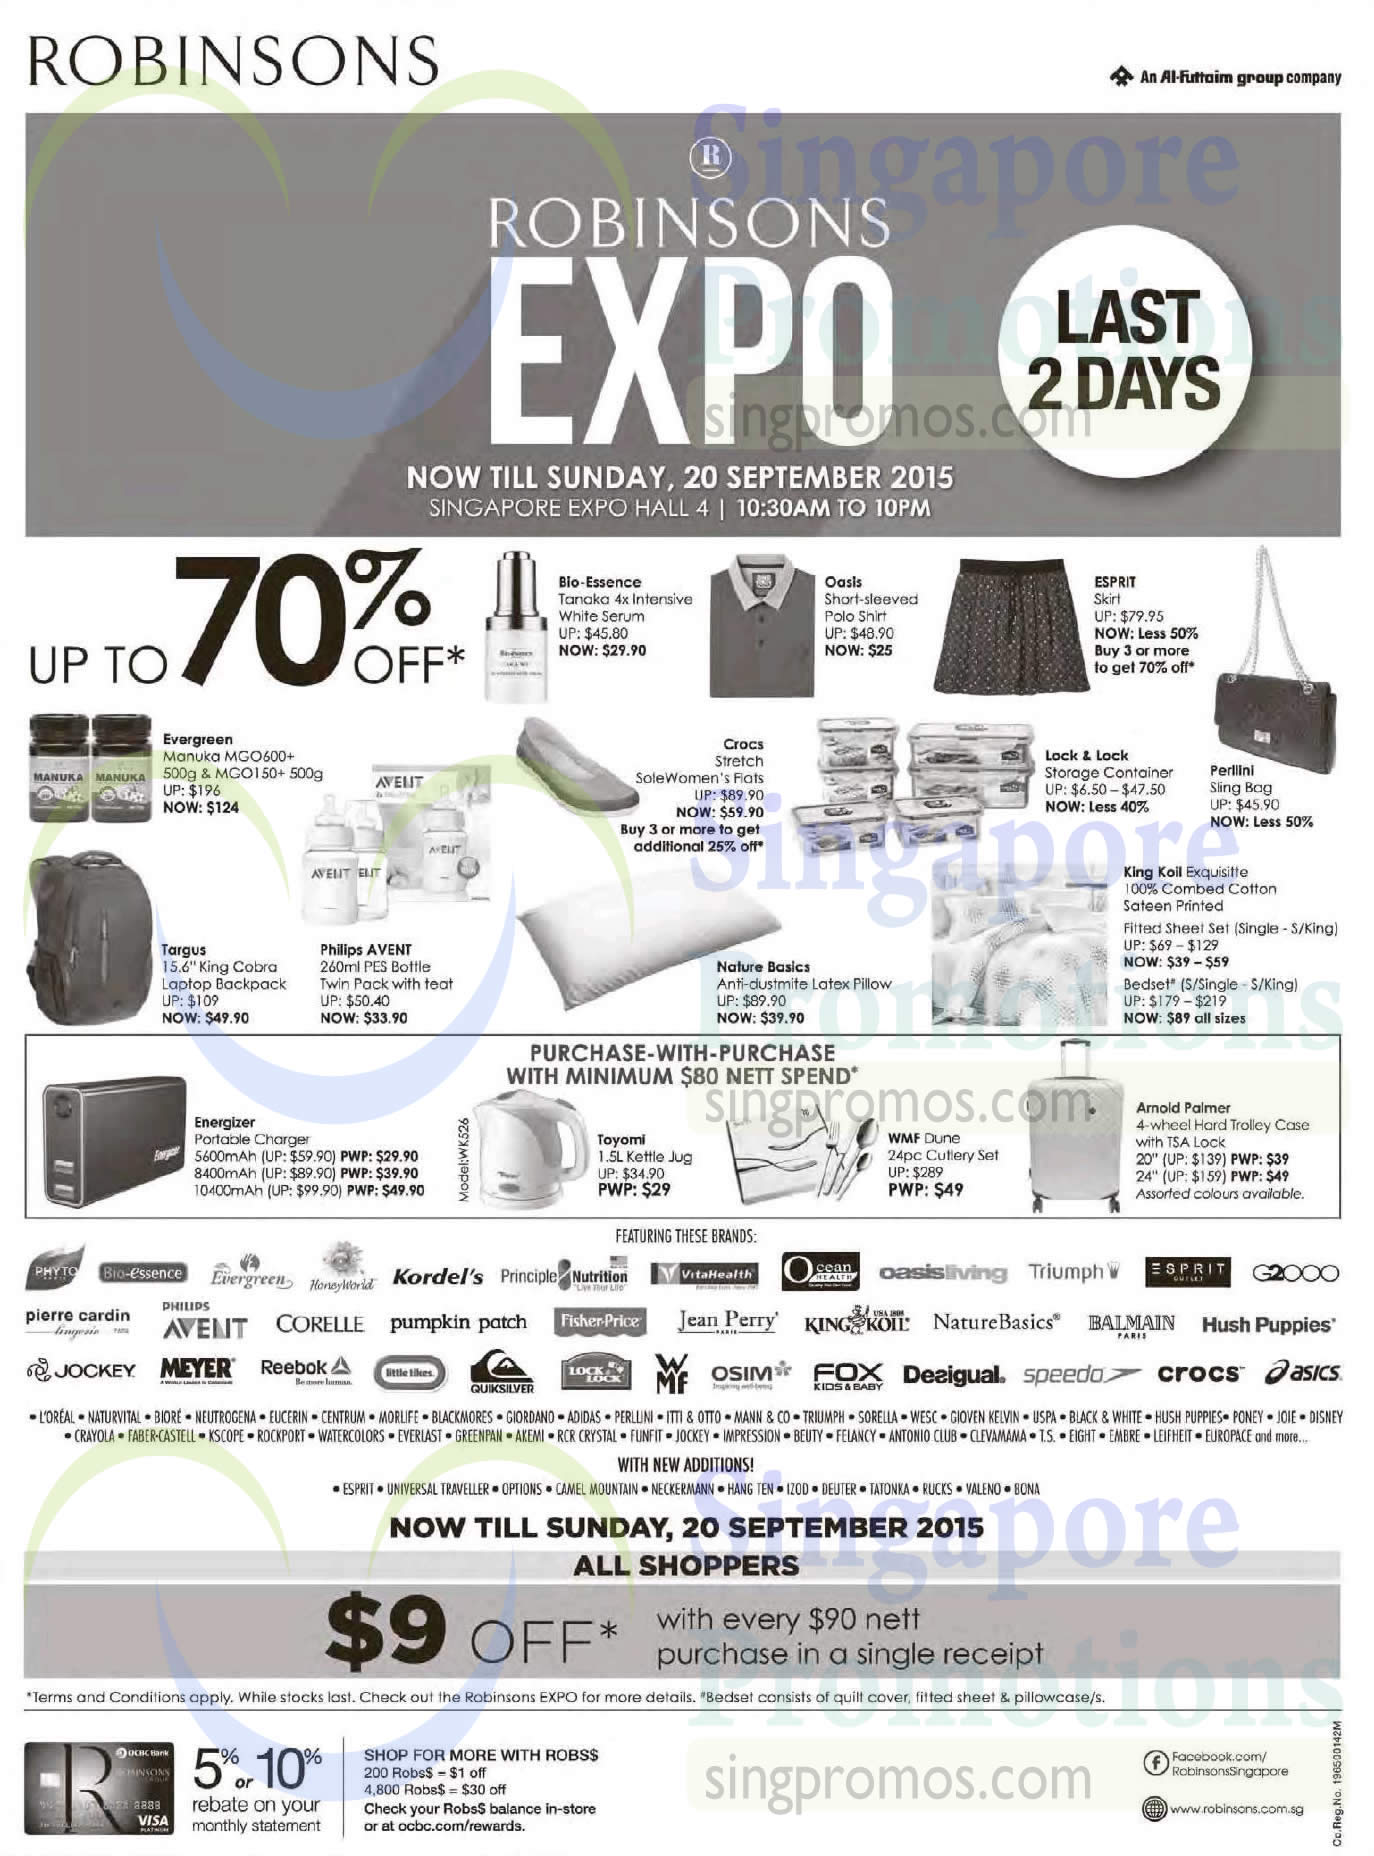 19 Sep Apparels, Supplements, Handbag, Bedsheet Set, Backpack, Purchase  With Purchase, Featured Brands